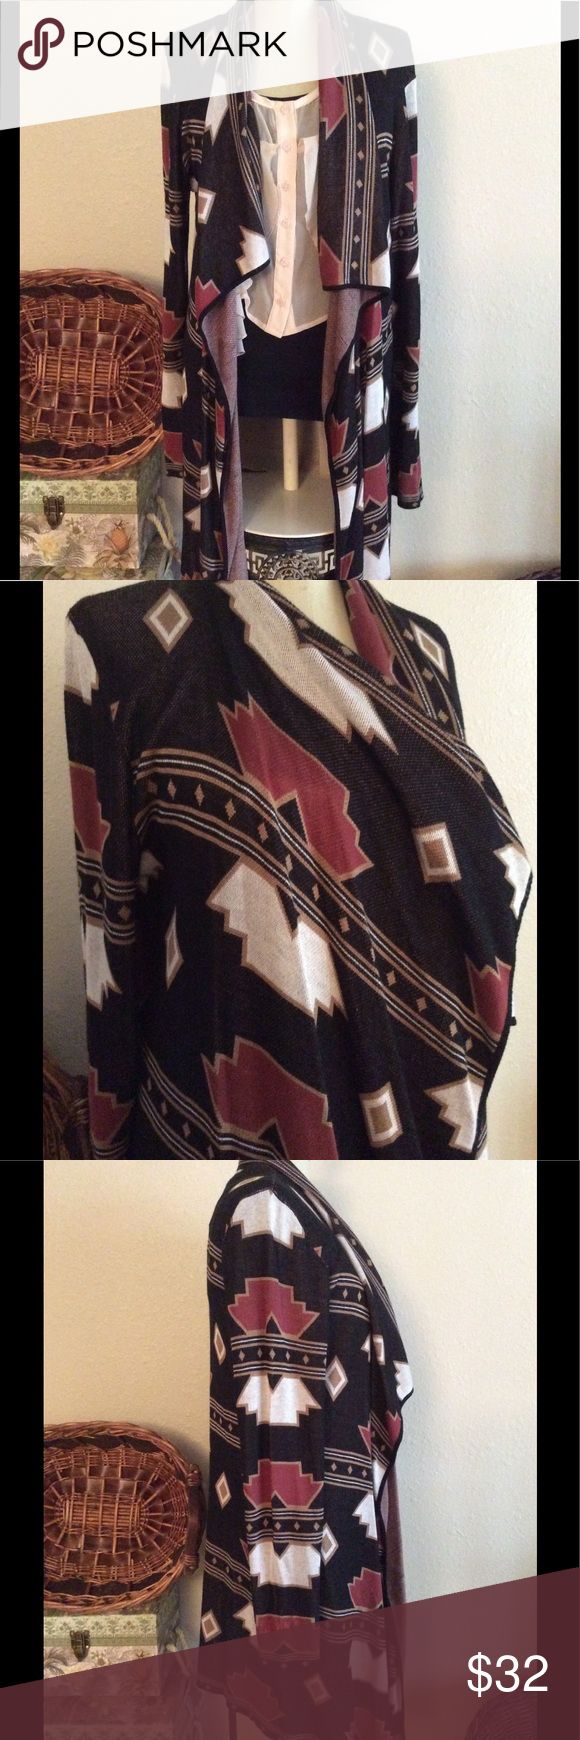 💥GUESS Boho American Tribal Long Cardigan Guess American Indian Tribal Print Cardigan, soft and lightweight. Super cute, on trend, immaculate Like New condition, size XL would fit Med to Large as well (almost a one size) Guess Sweaters Cardigans